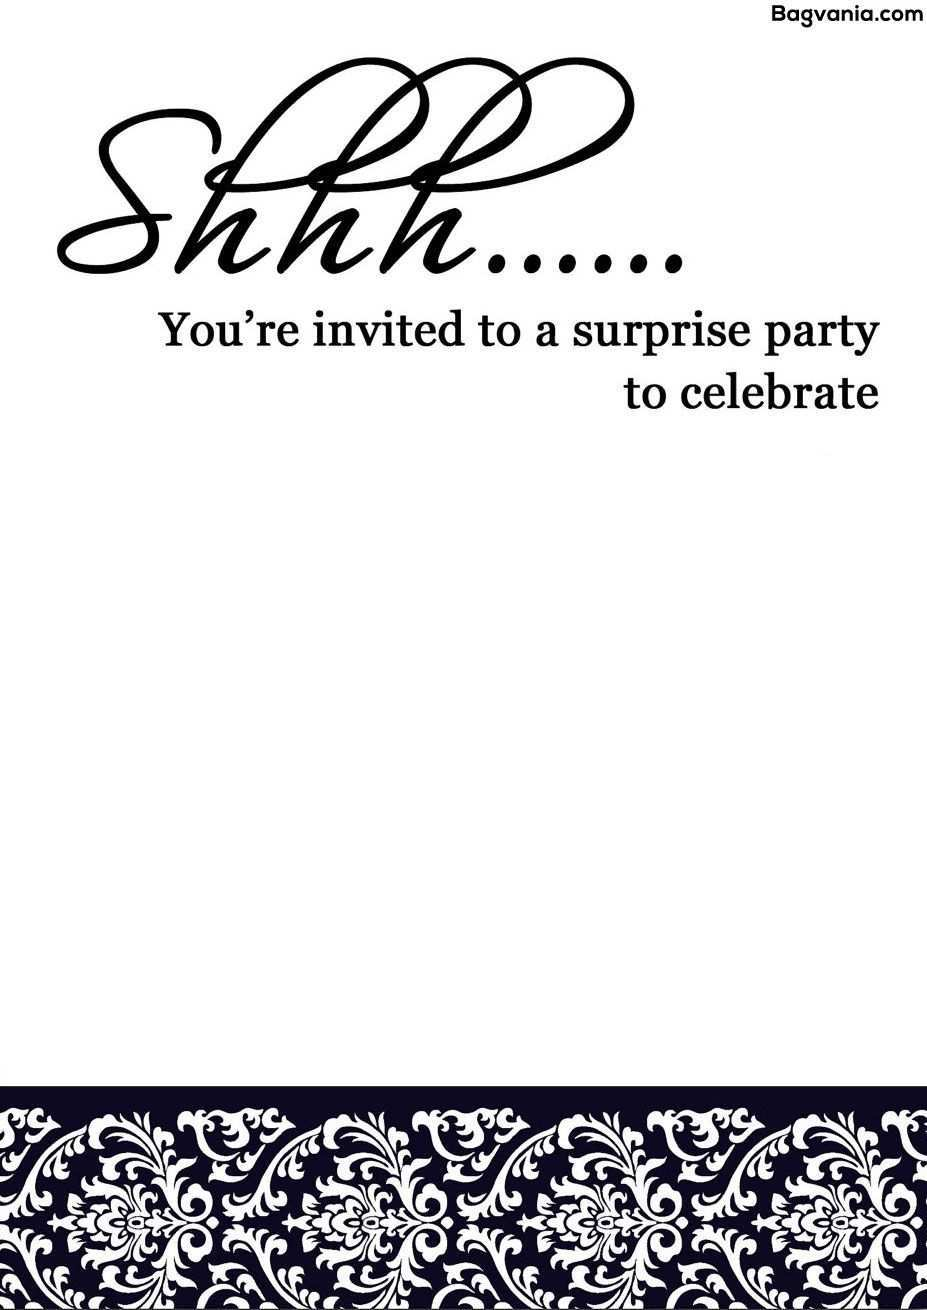 4 Customize Surprise Party Invitation Template Uk Templates for